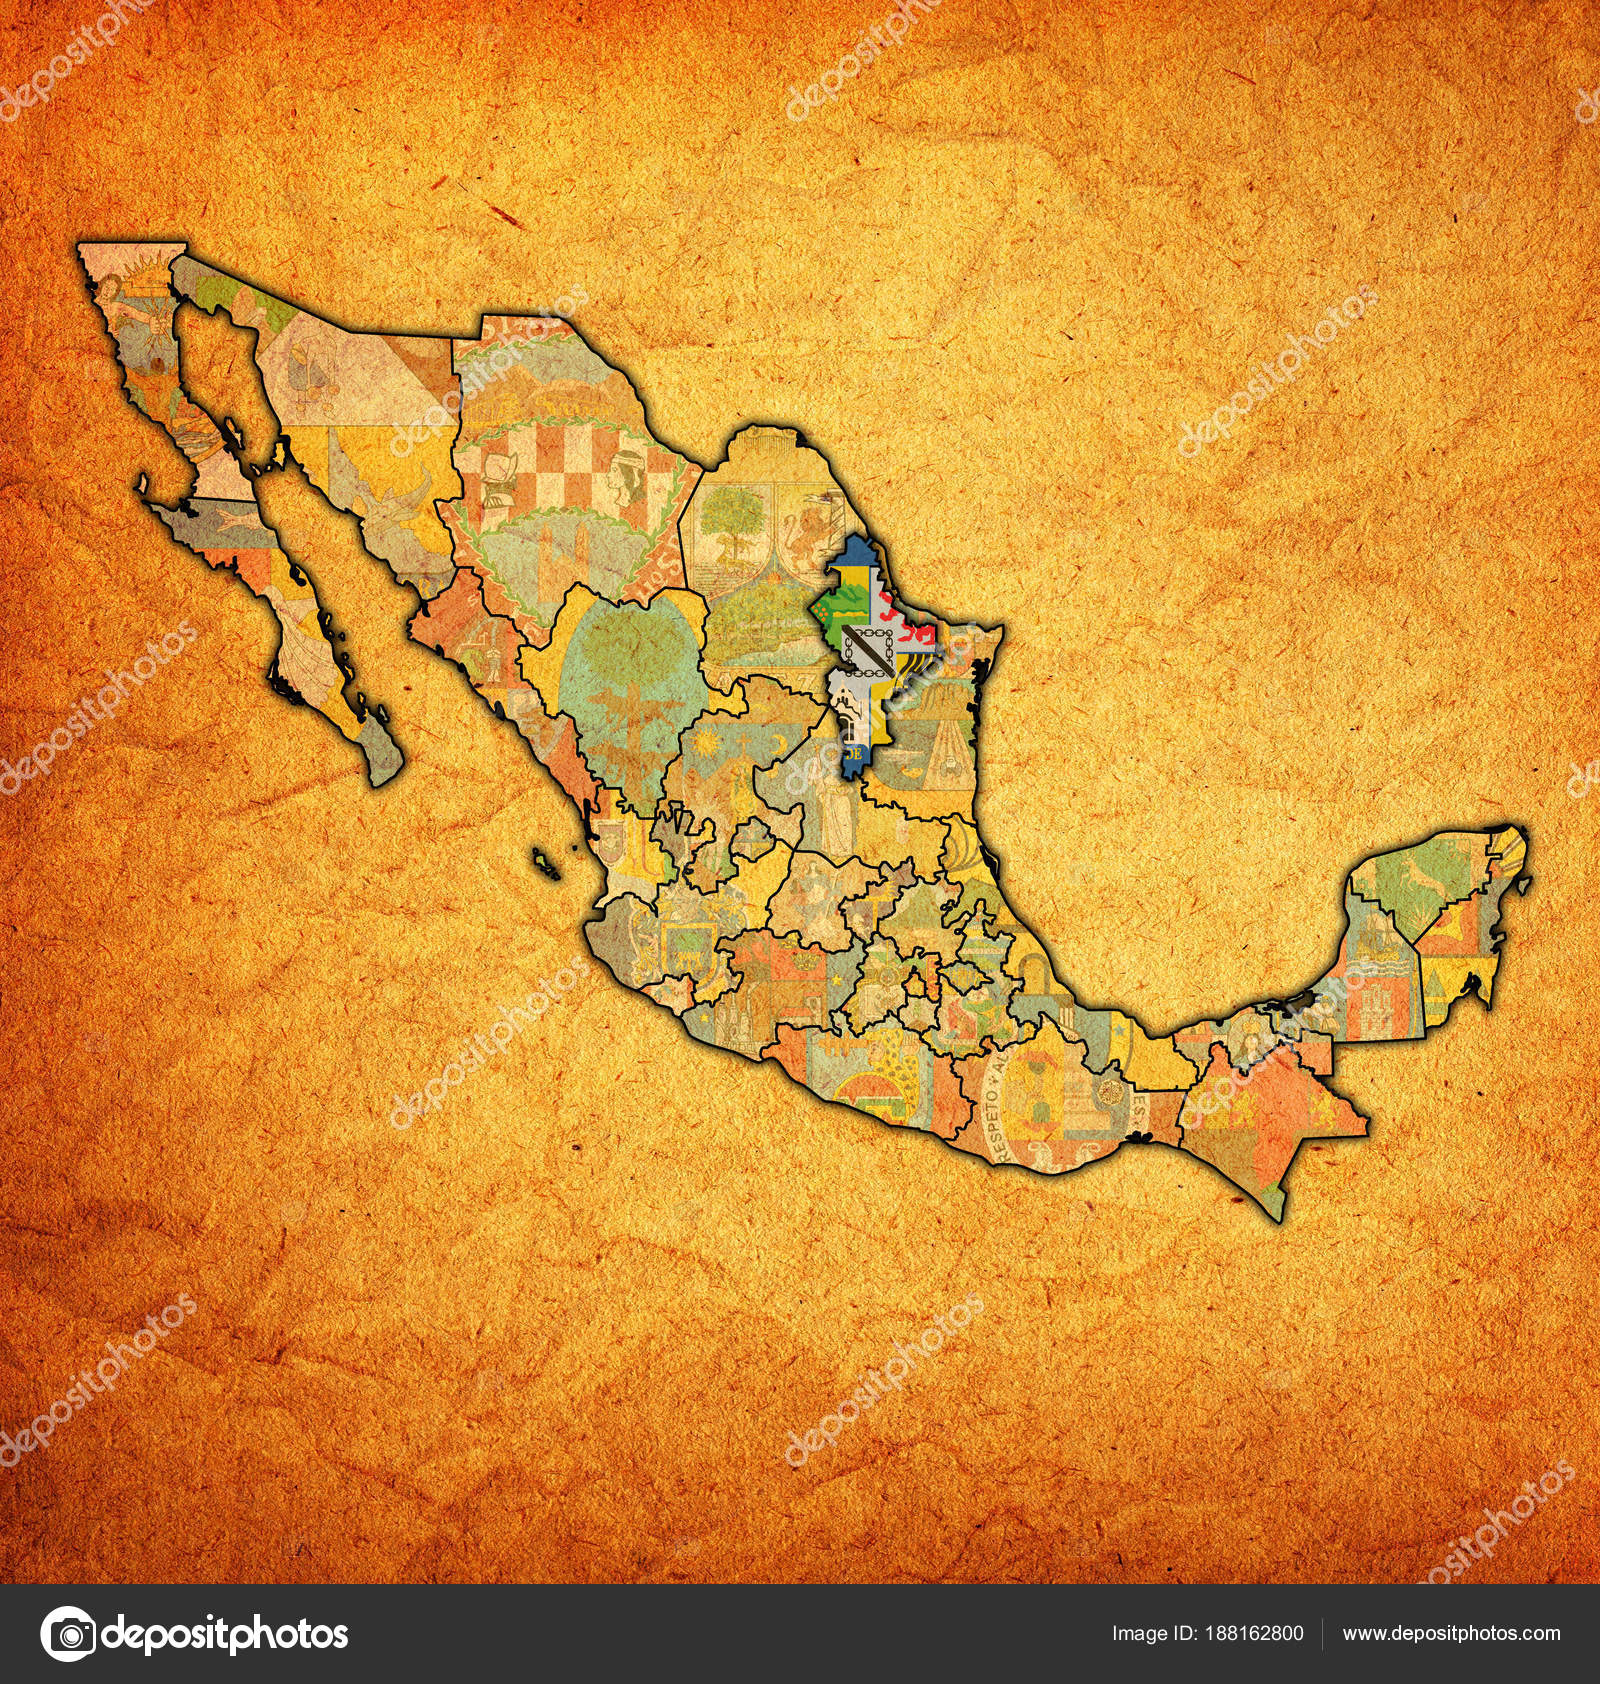 Nuevo Leon On Administration Map Of Mexico Stock Photo C Michal812